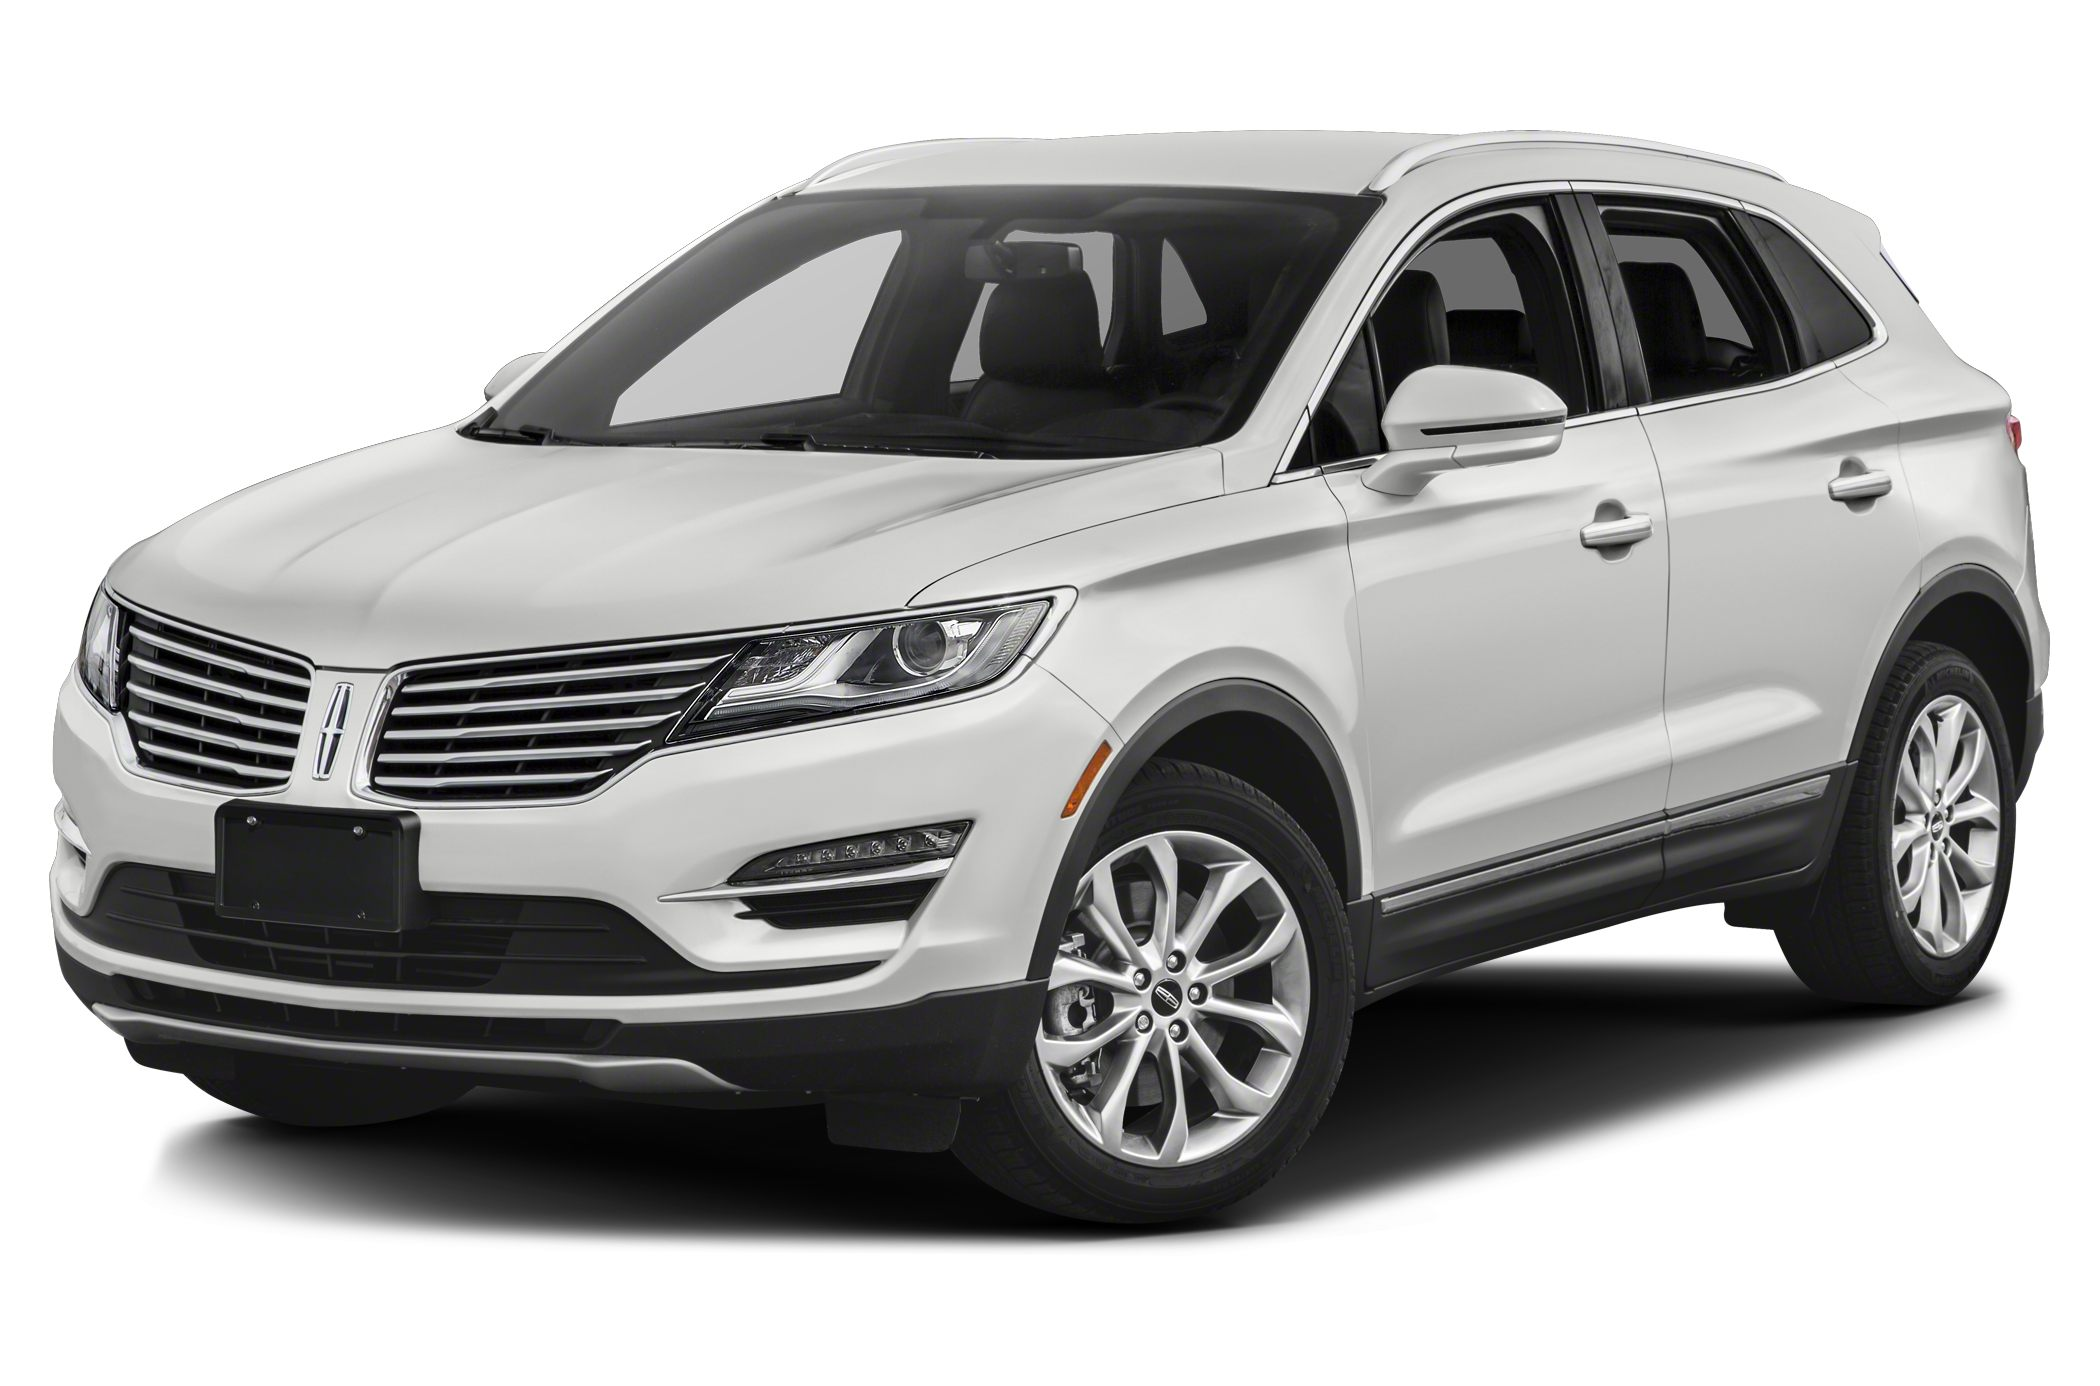 2018 lincoln mkc select for sale vin 5lmcj2c92jul